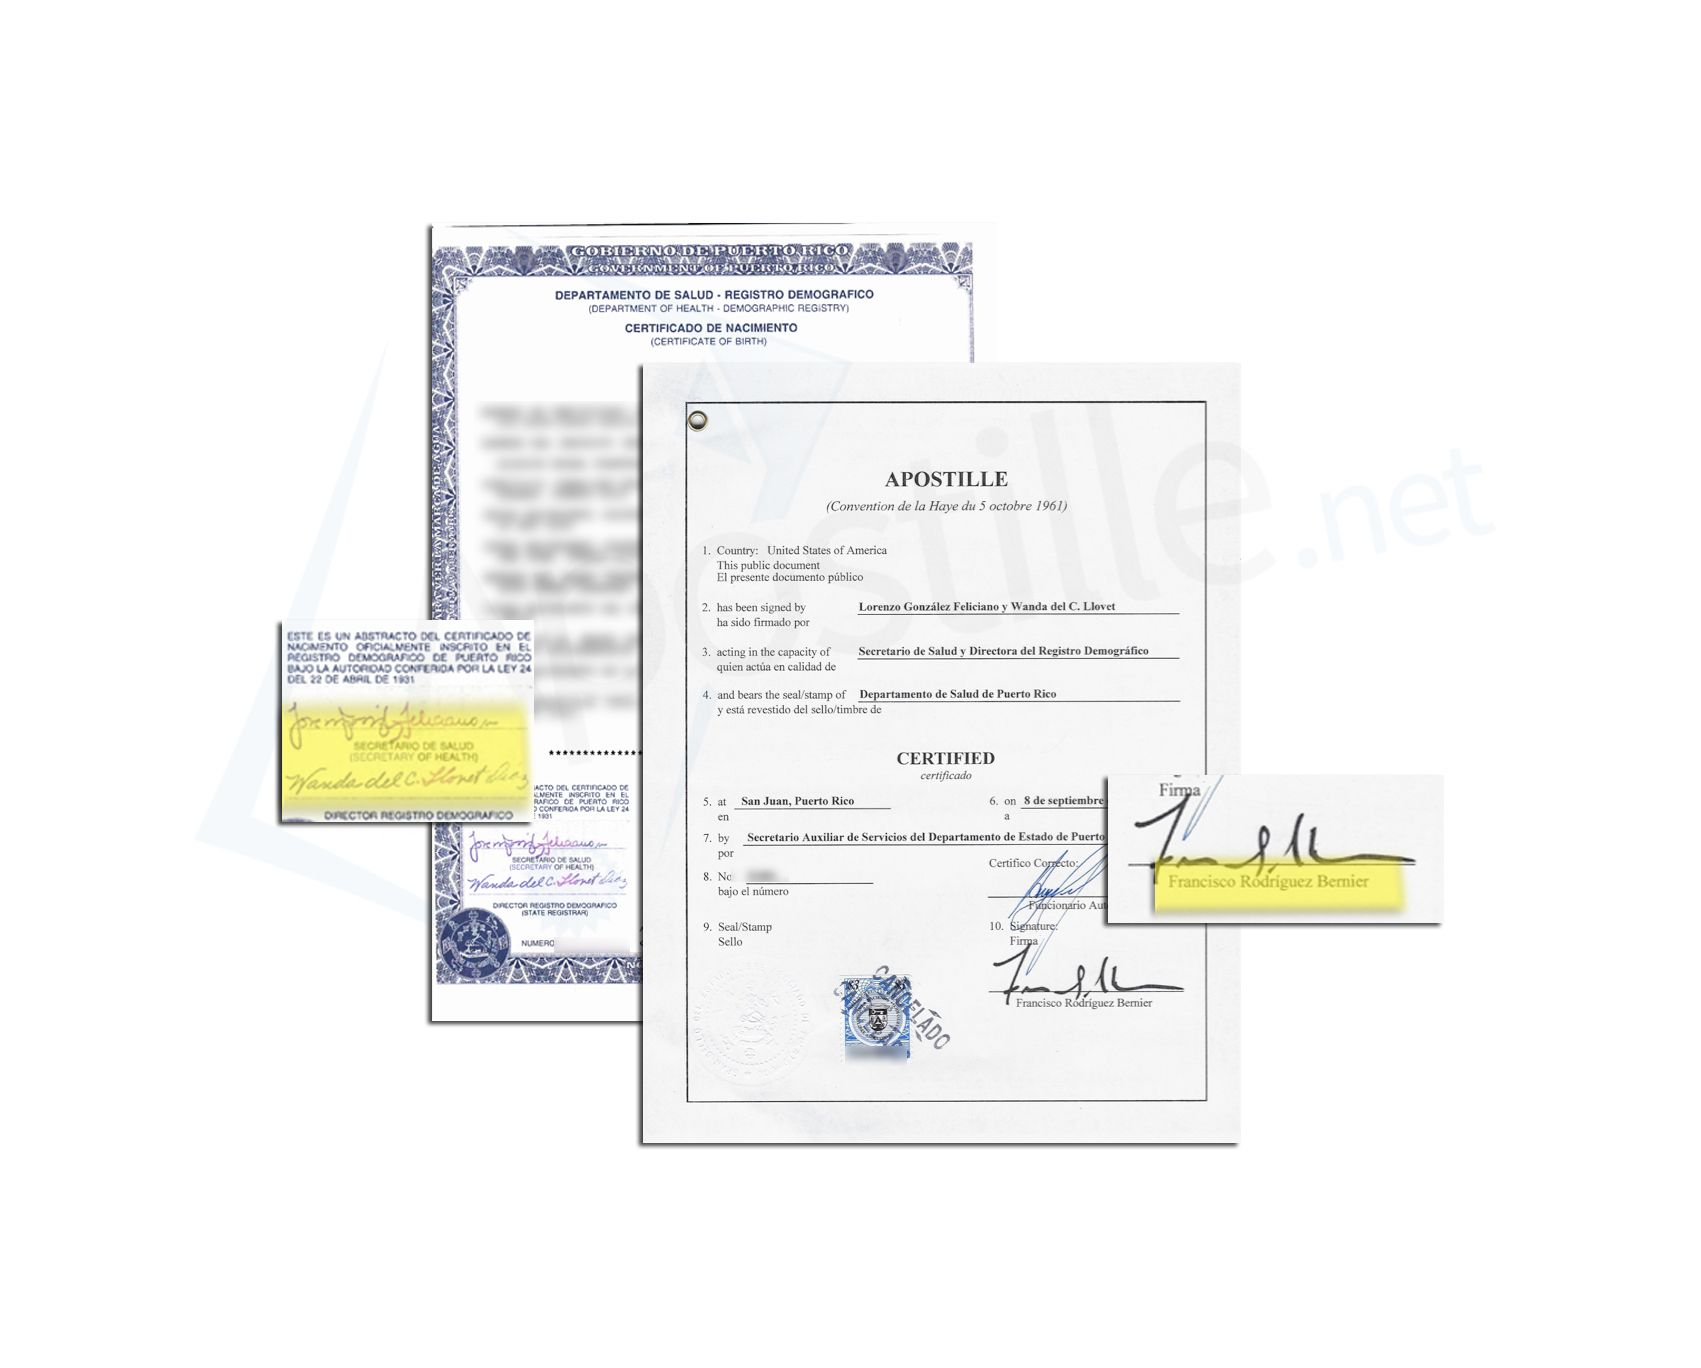 State of Puerto Rico Apostille issued by Francisco Rodriguez Bernier ...